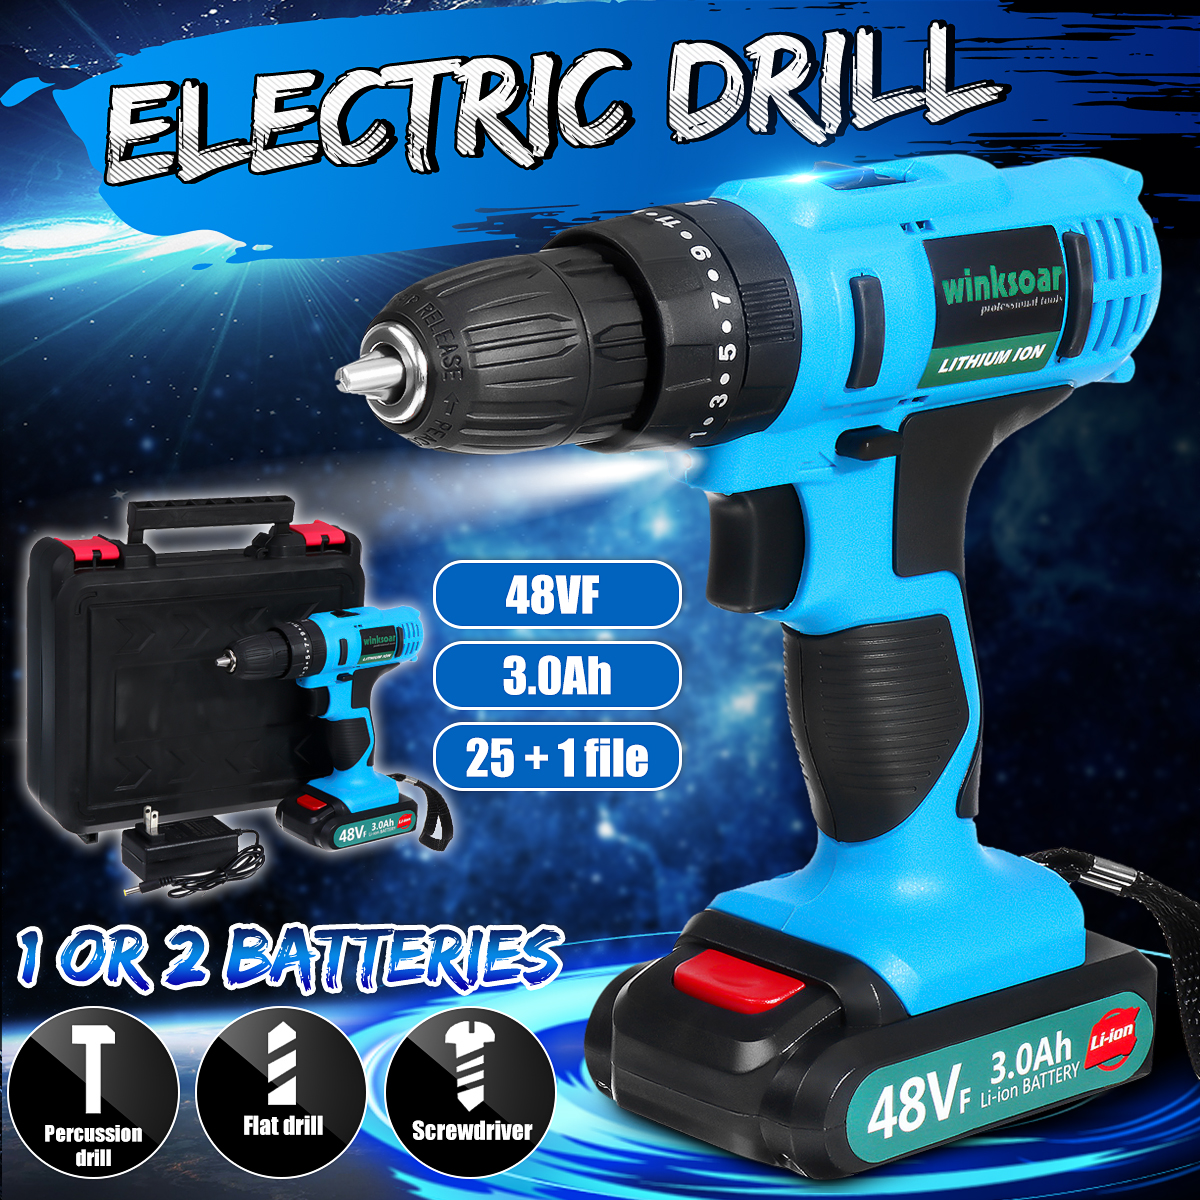 21V 48VF Rechargeable Electric Drill Cordless Screwdriver 25 + 1 File 3 Speed Impact Drill Powers Tool 3.0Ah Lithium Ion Battery